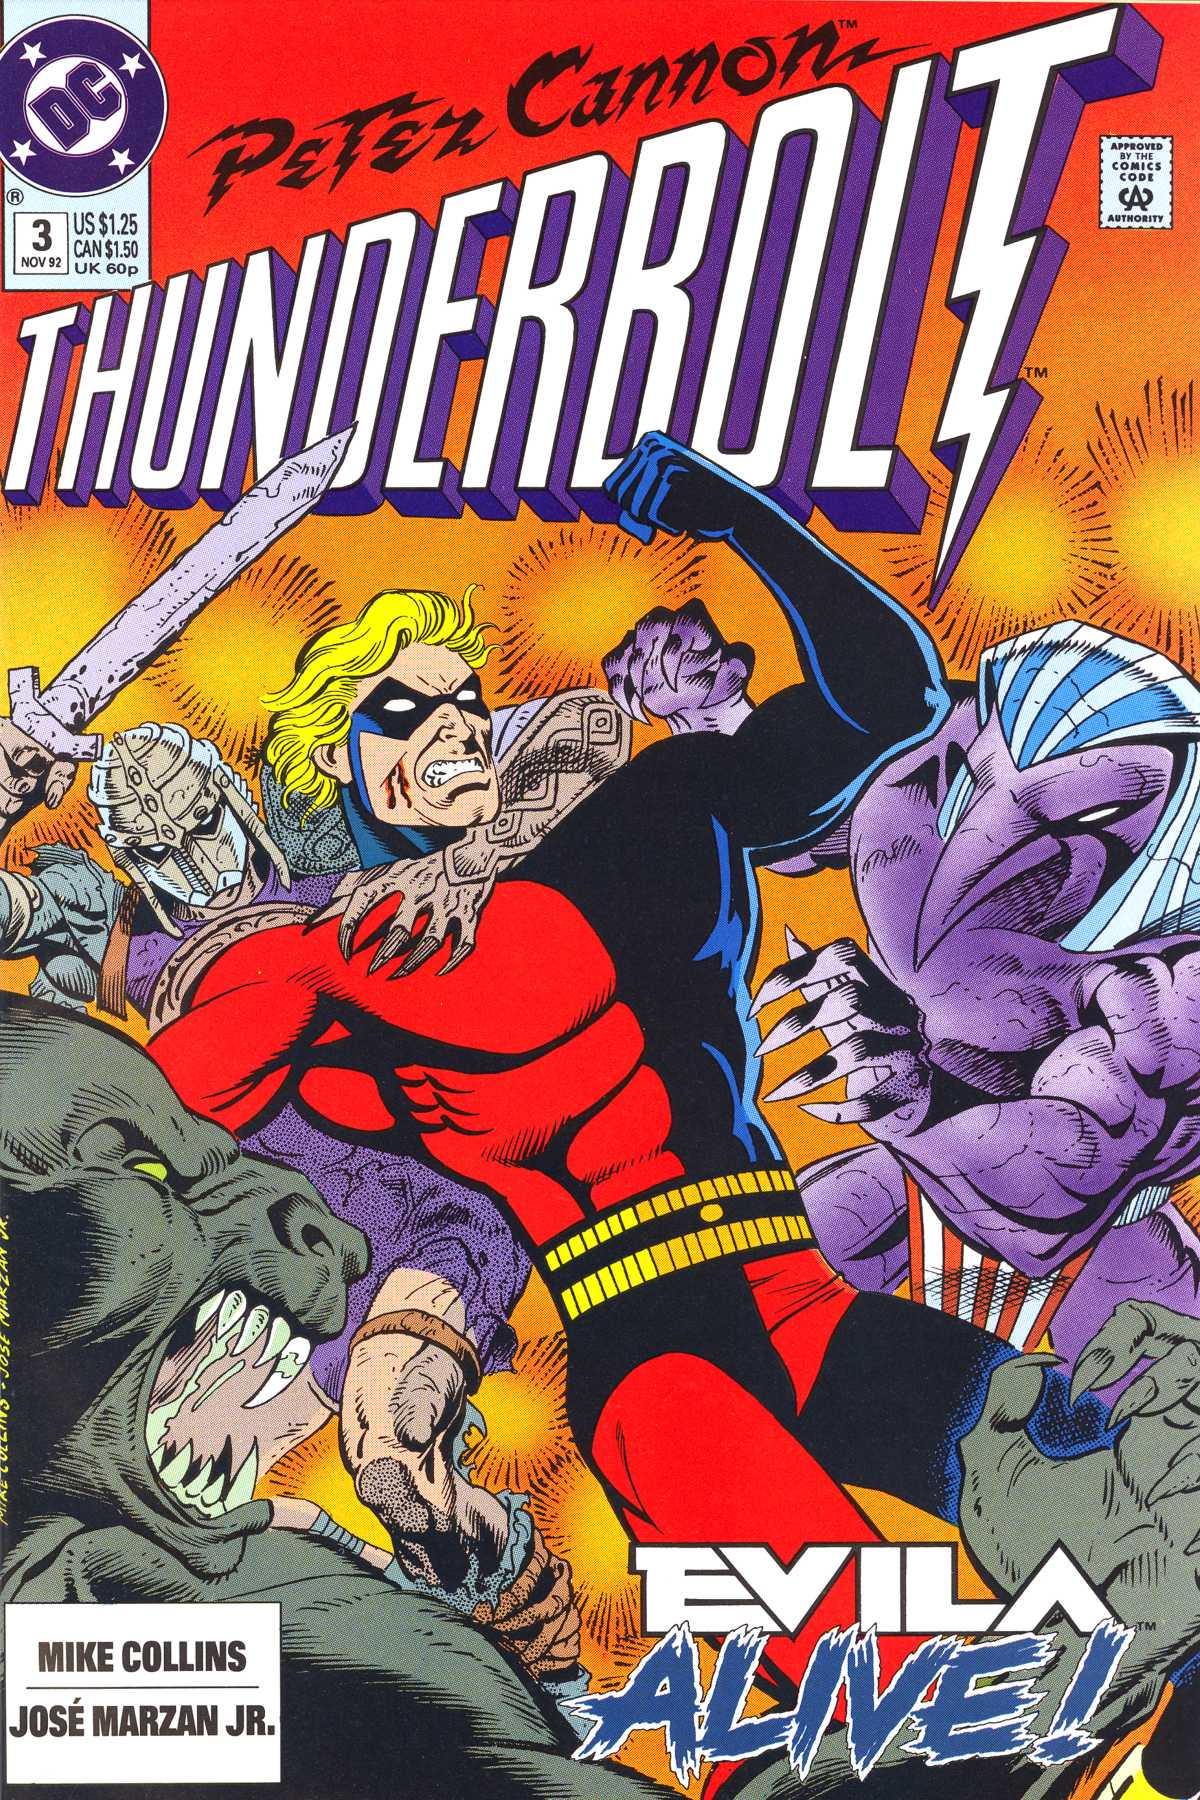 Read online Peter Cannon--Thunderbolt (1992) comic -  Issue #3 - 1